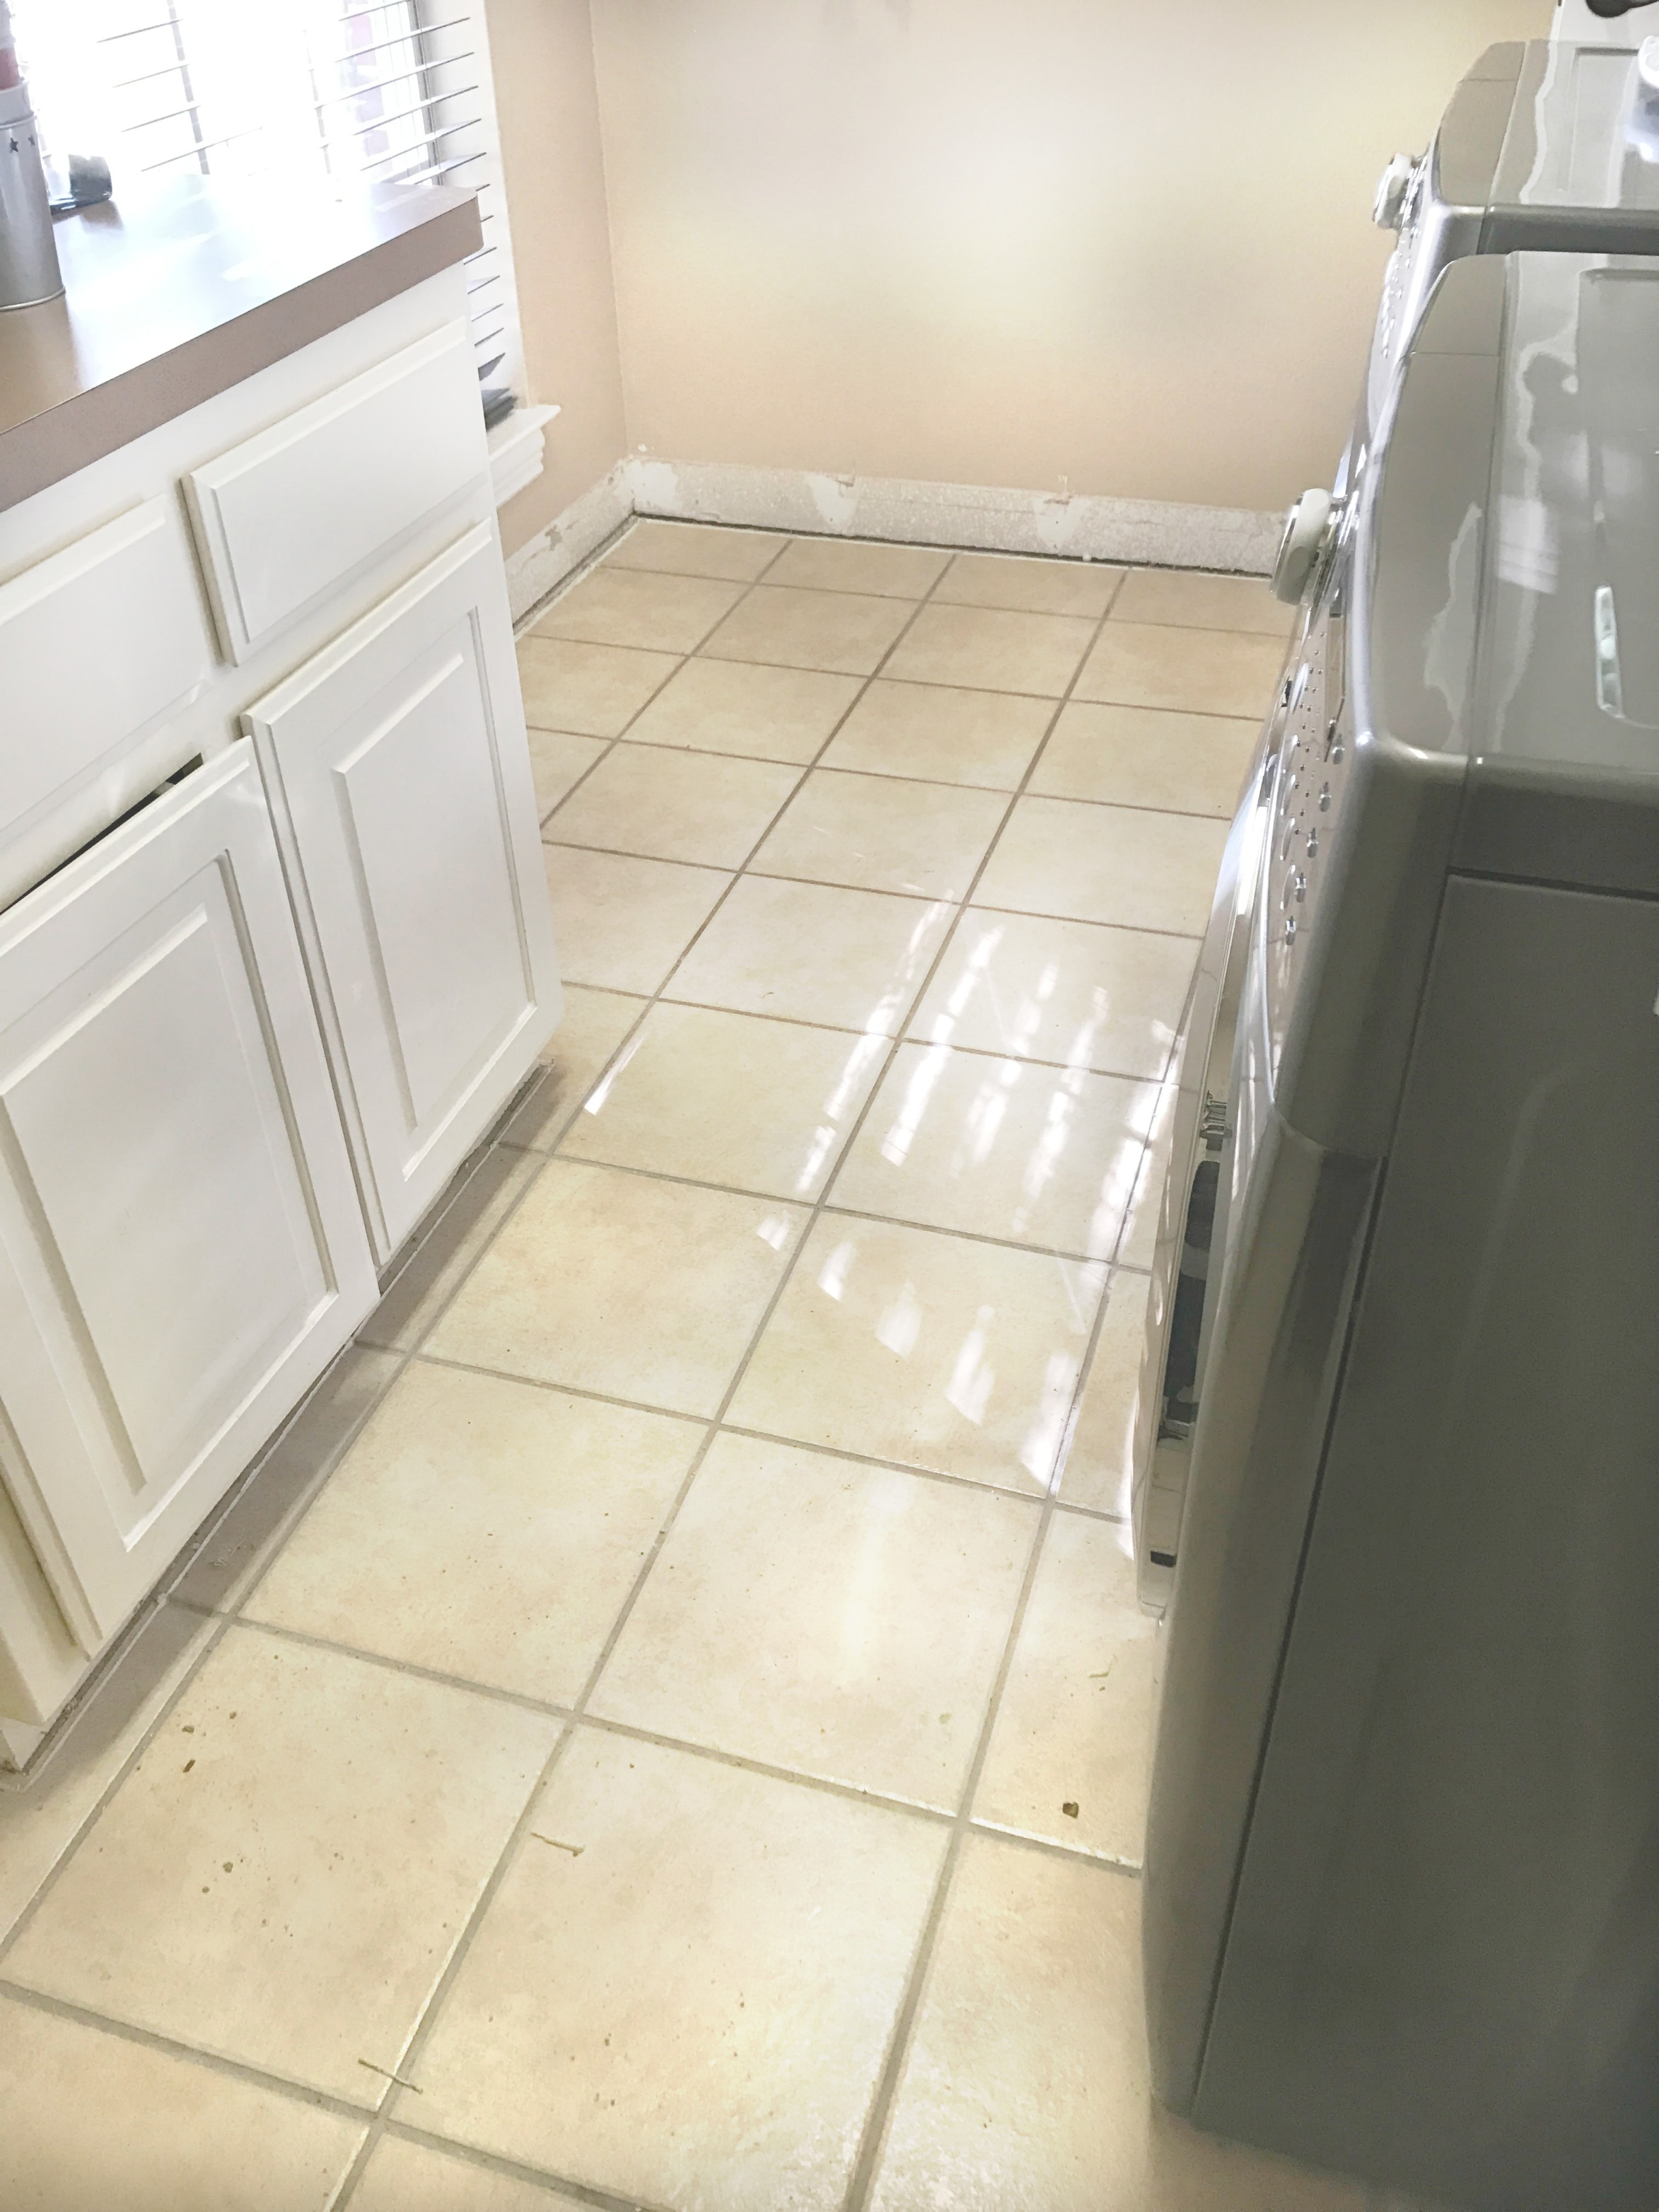 Laundry room tile_before.jpg